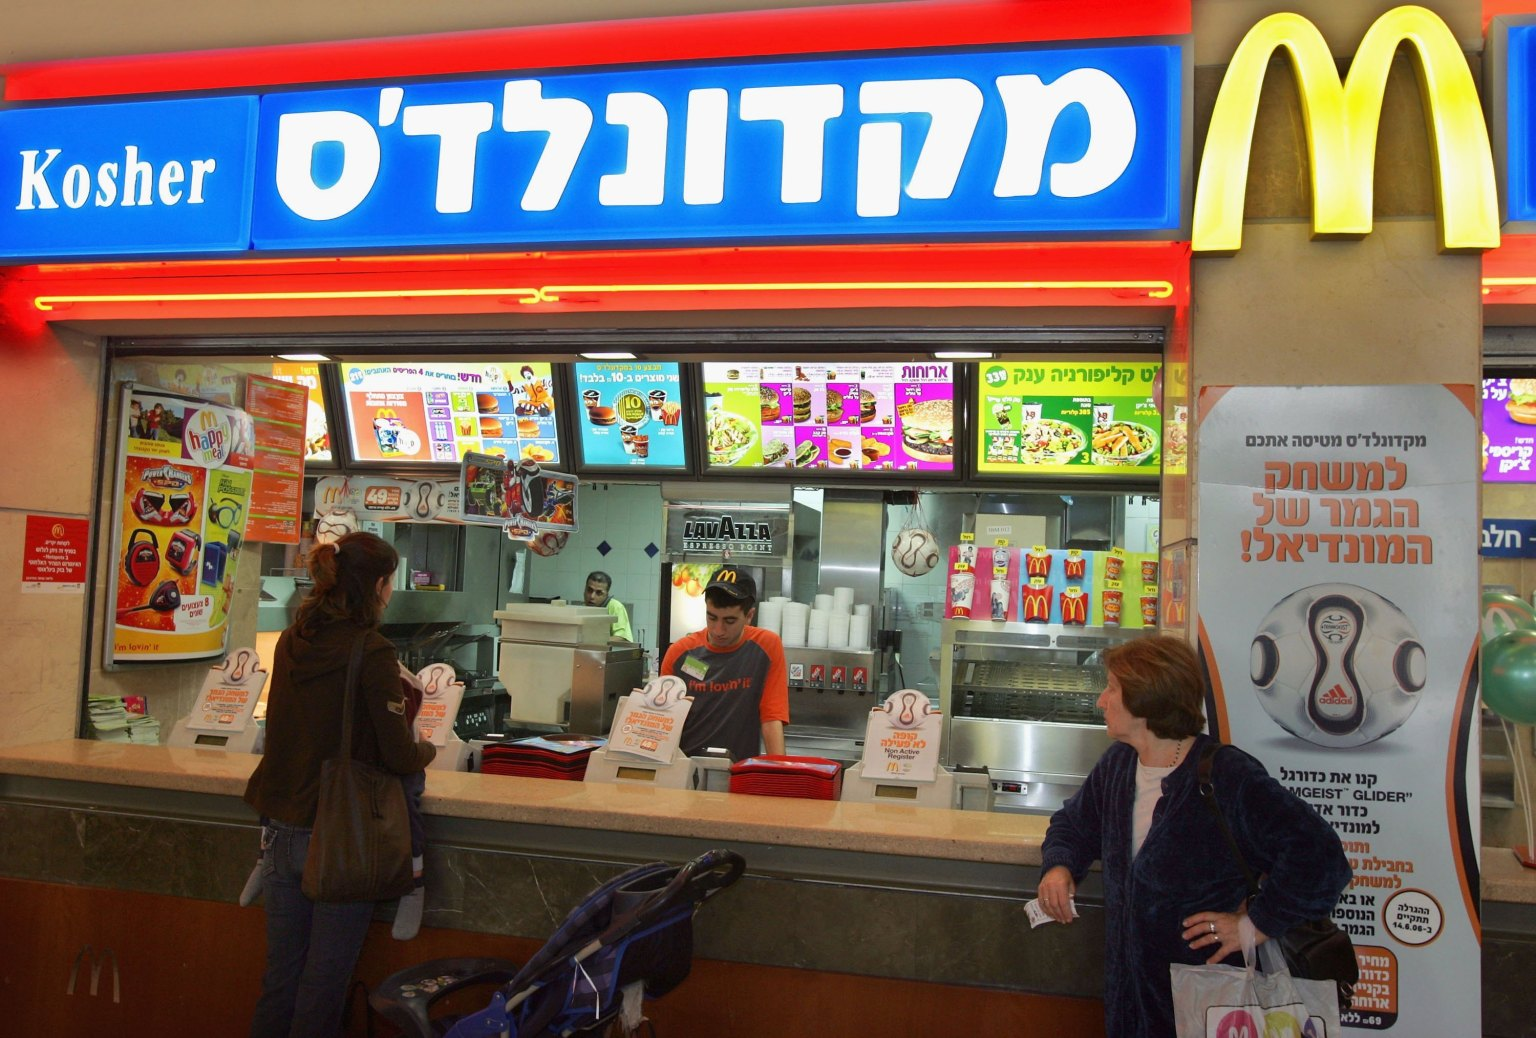 McDonald?s Changes Sign To Attract Kosher Diners